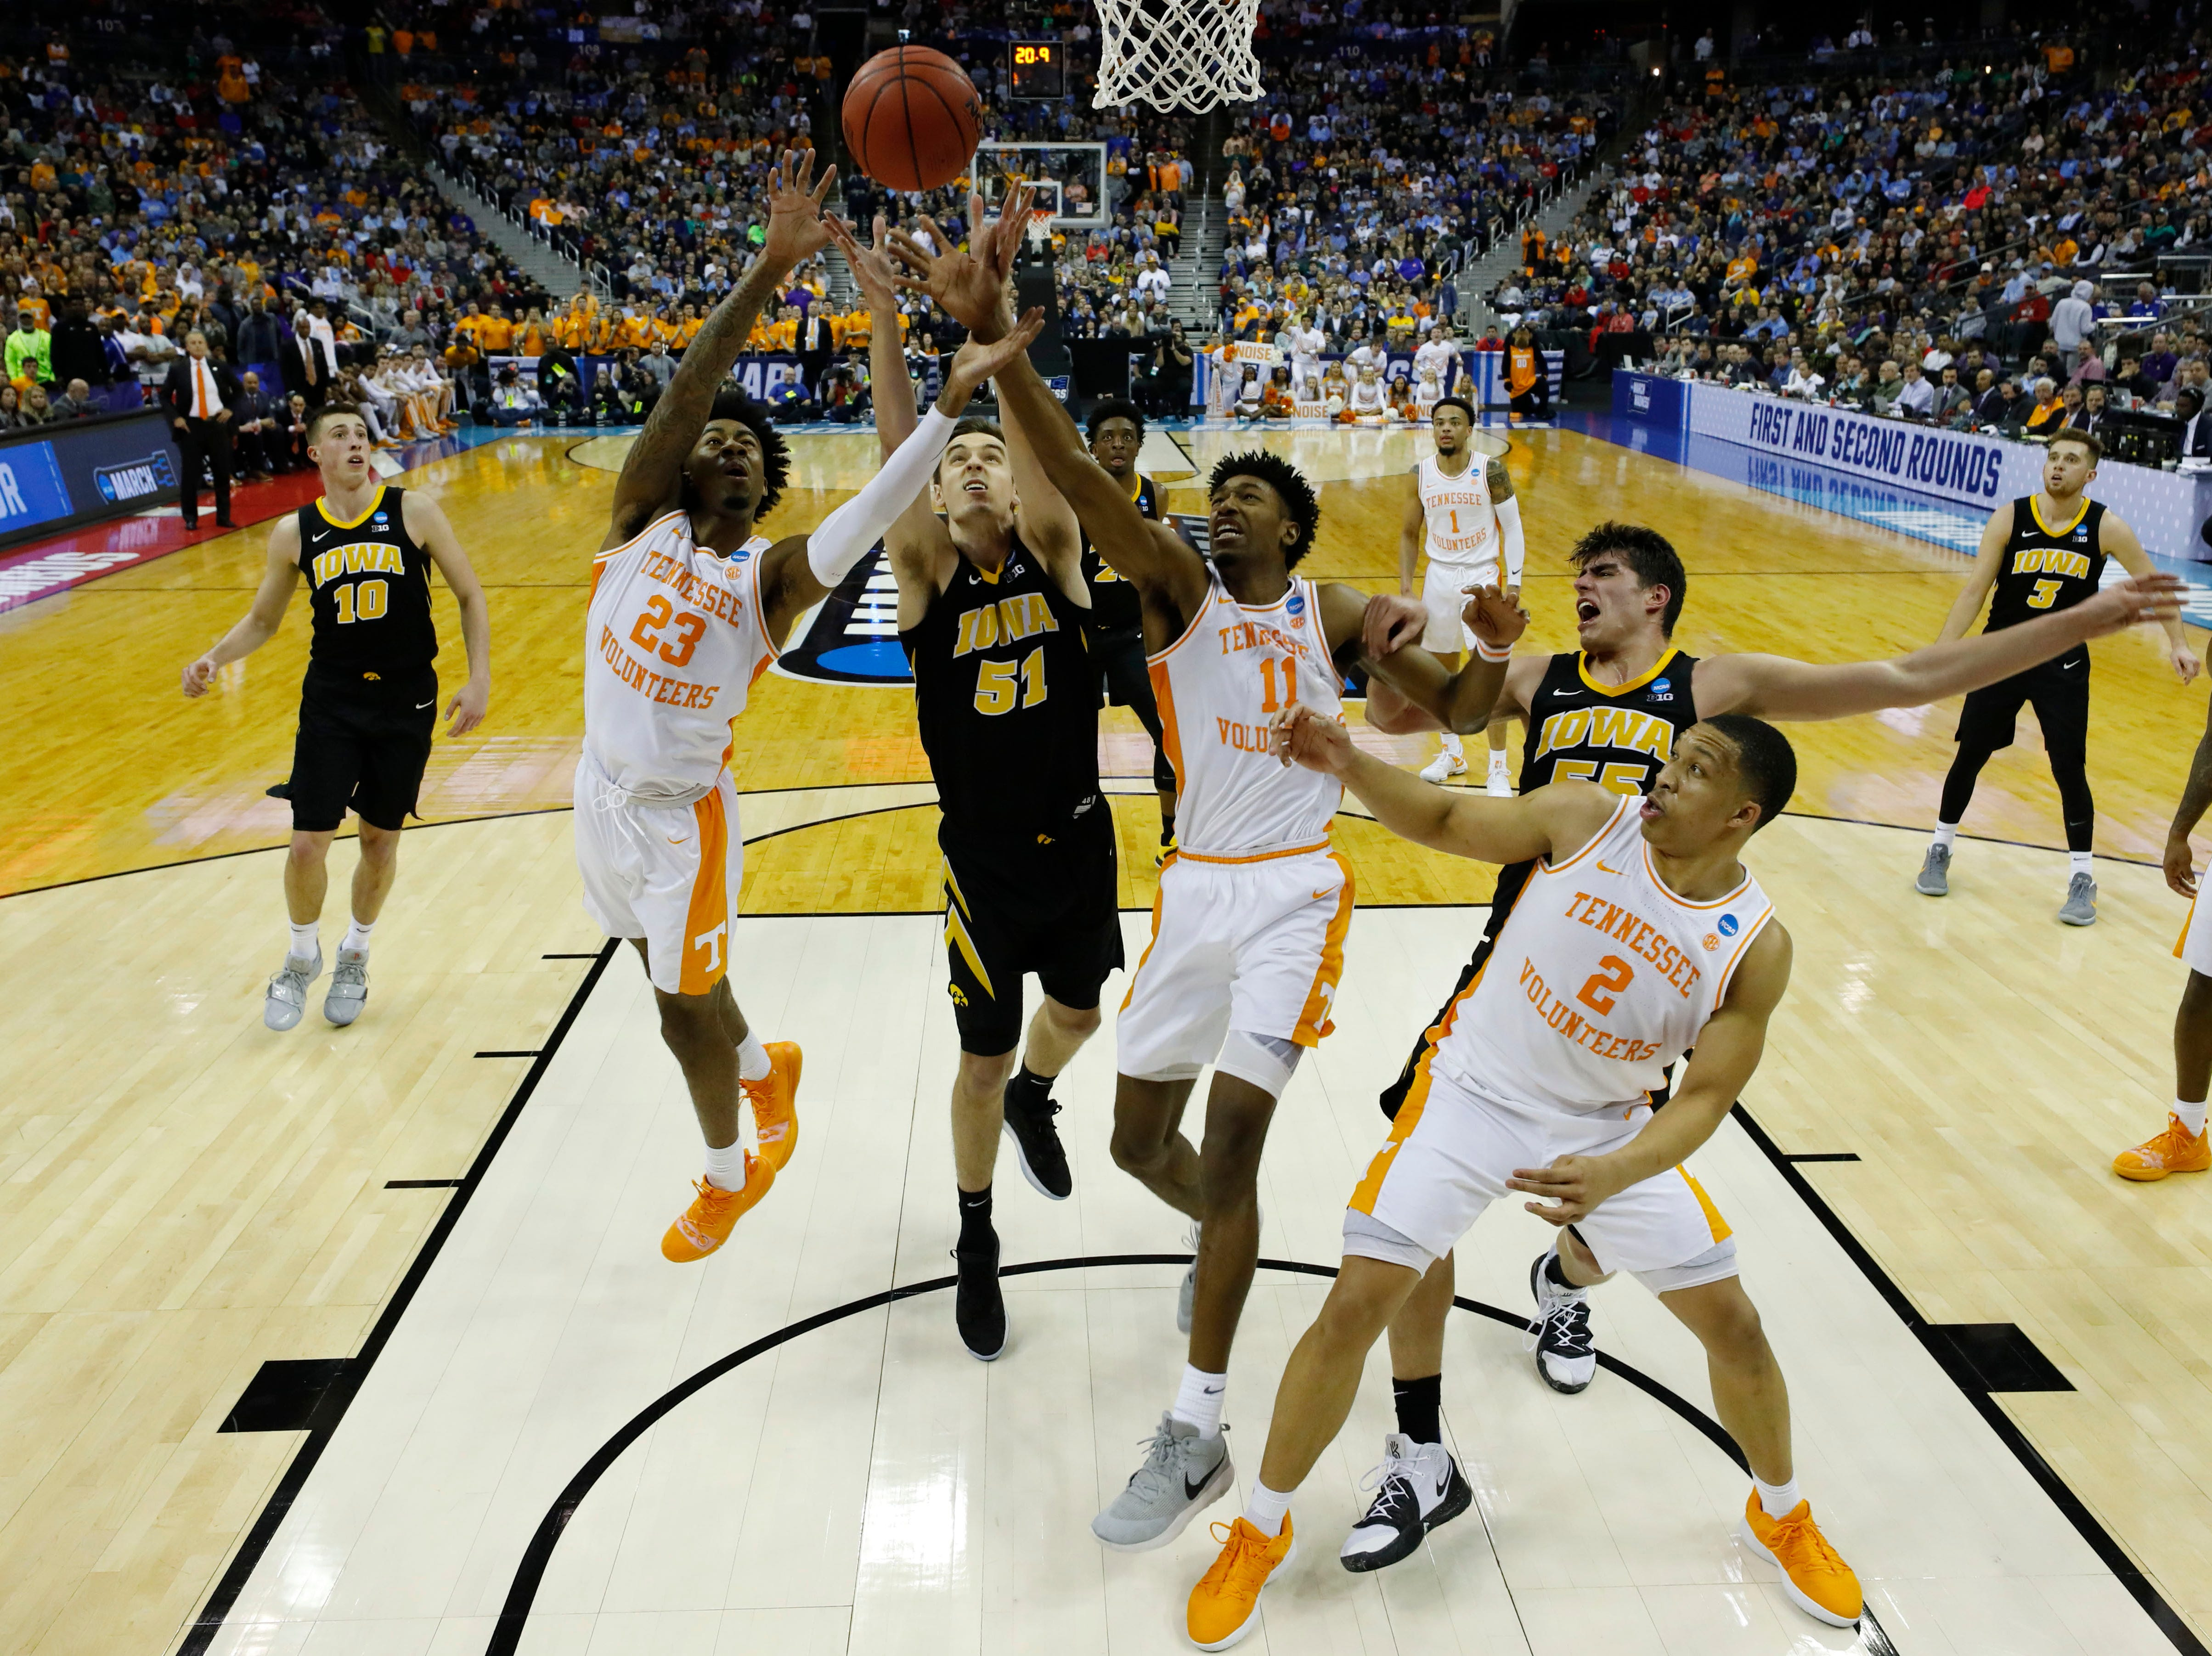 Tennessee Volunteers guard Jordan Bowden (23) and forward Kyle Alexander (11) battle for a rebounded ball with Iowa Hawkeyes forward Nicholas Baer (51) in overtime in the second round of the 2019 NCAA Tournament at Nationwide Arena.